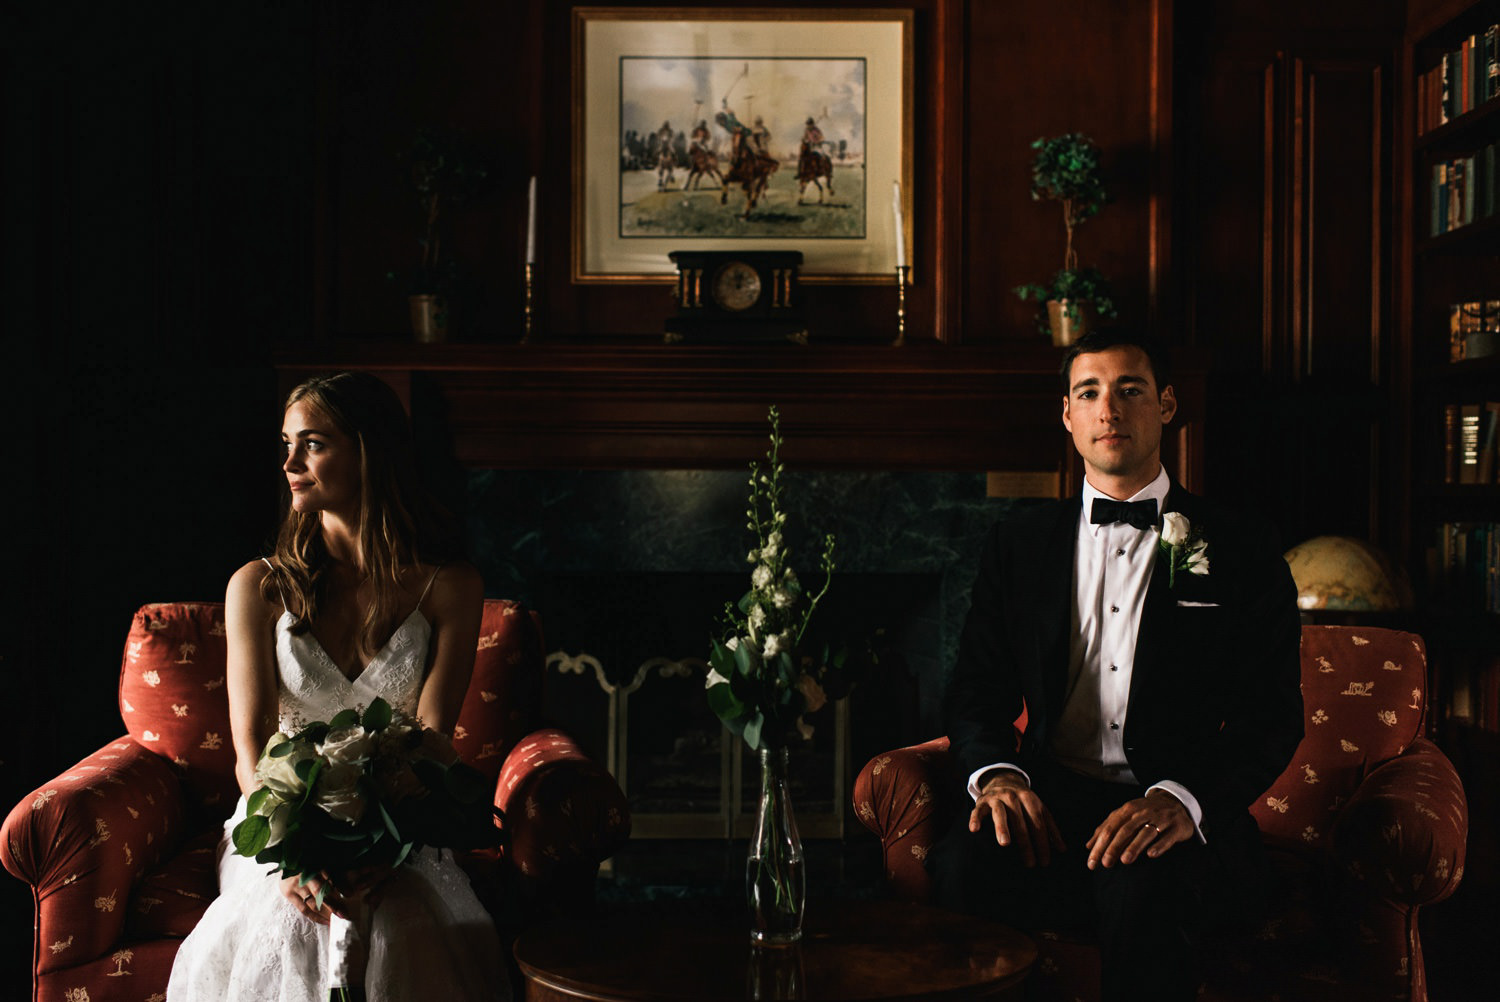 montecito polo club wedding portrait - montecito wedding photography